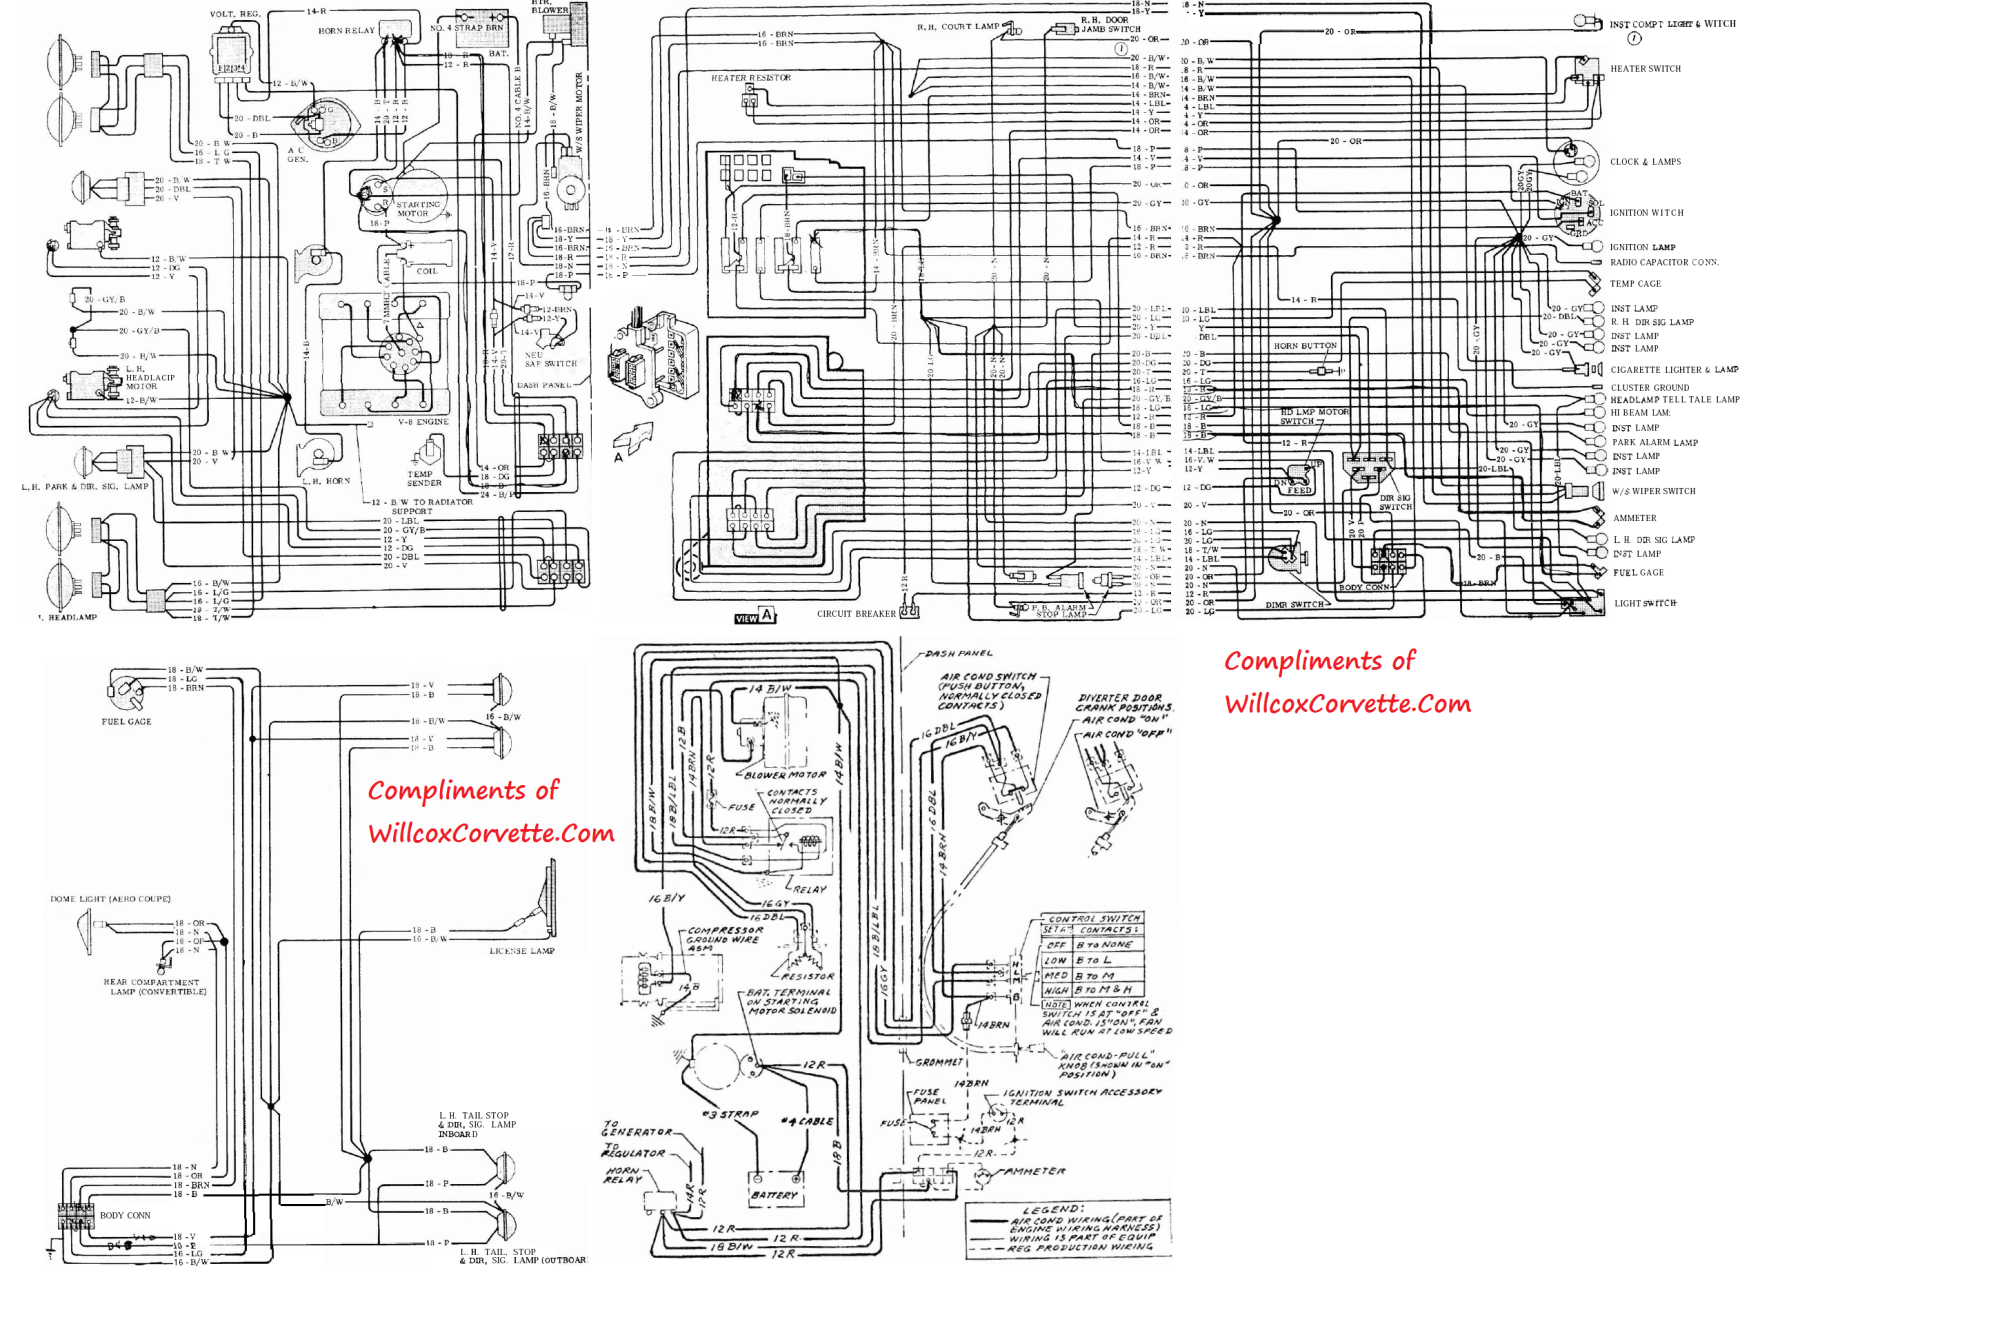 hight resolution of 1968 corvette dash wiring diagram wiring diagrams 68 corvette dash wiring diagram free download